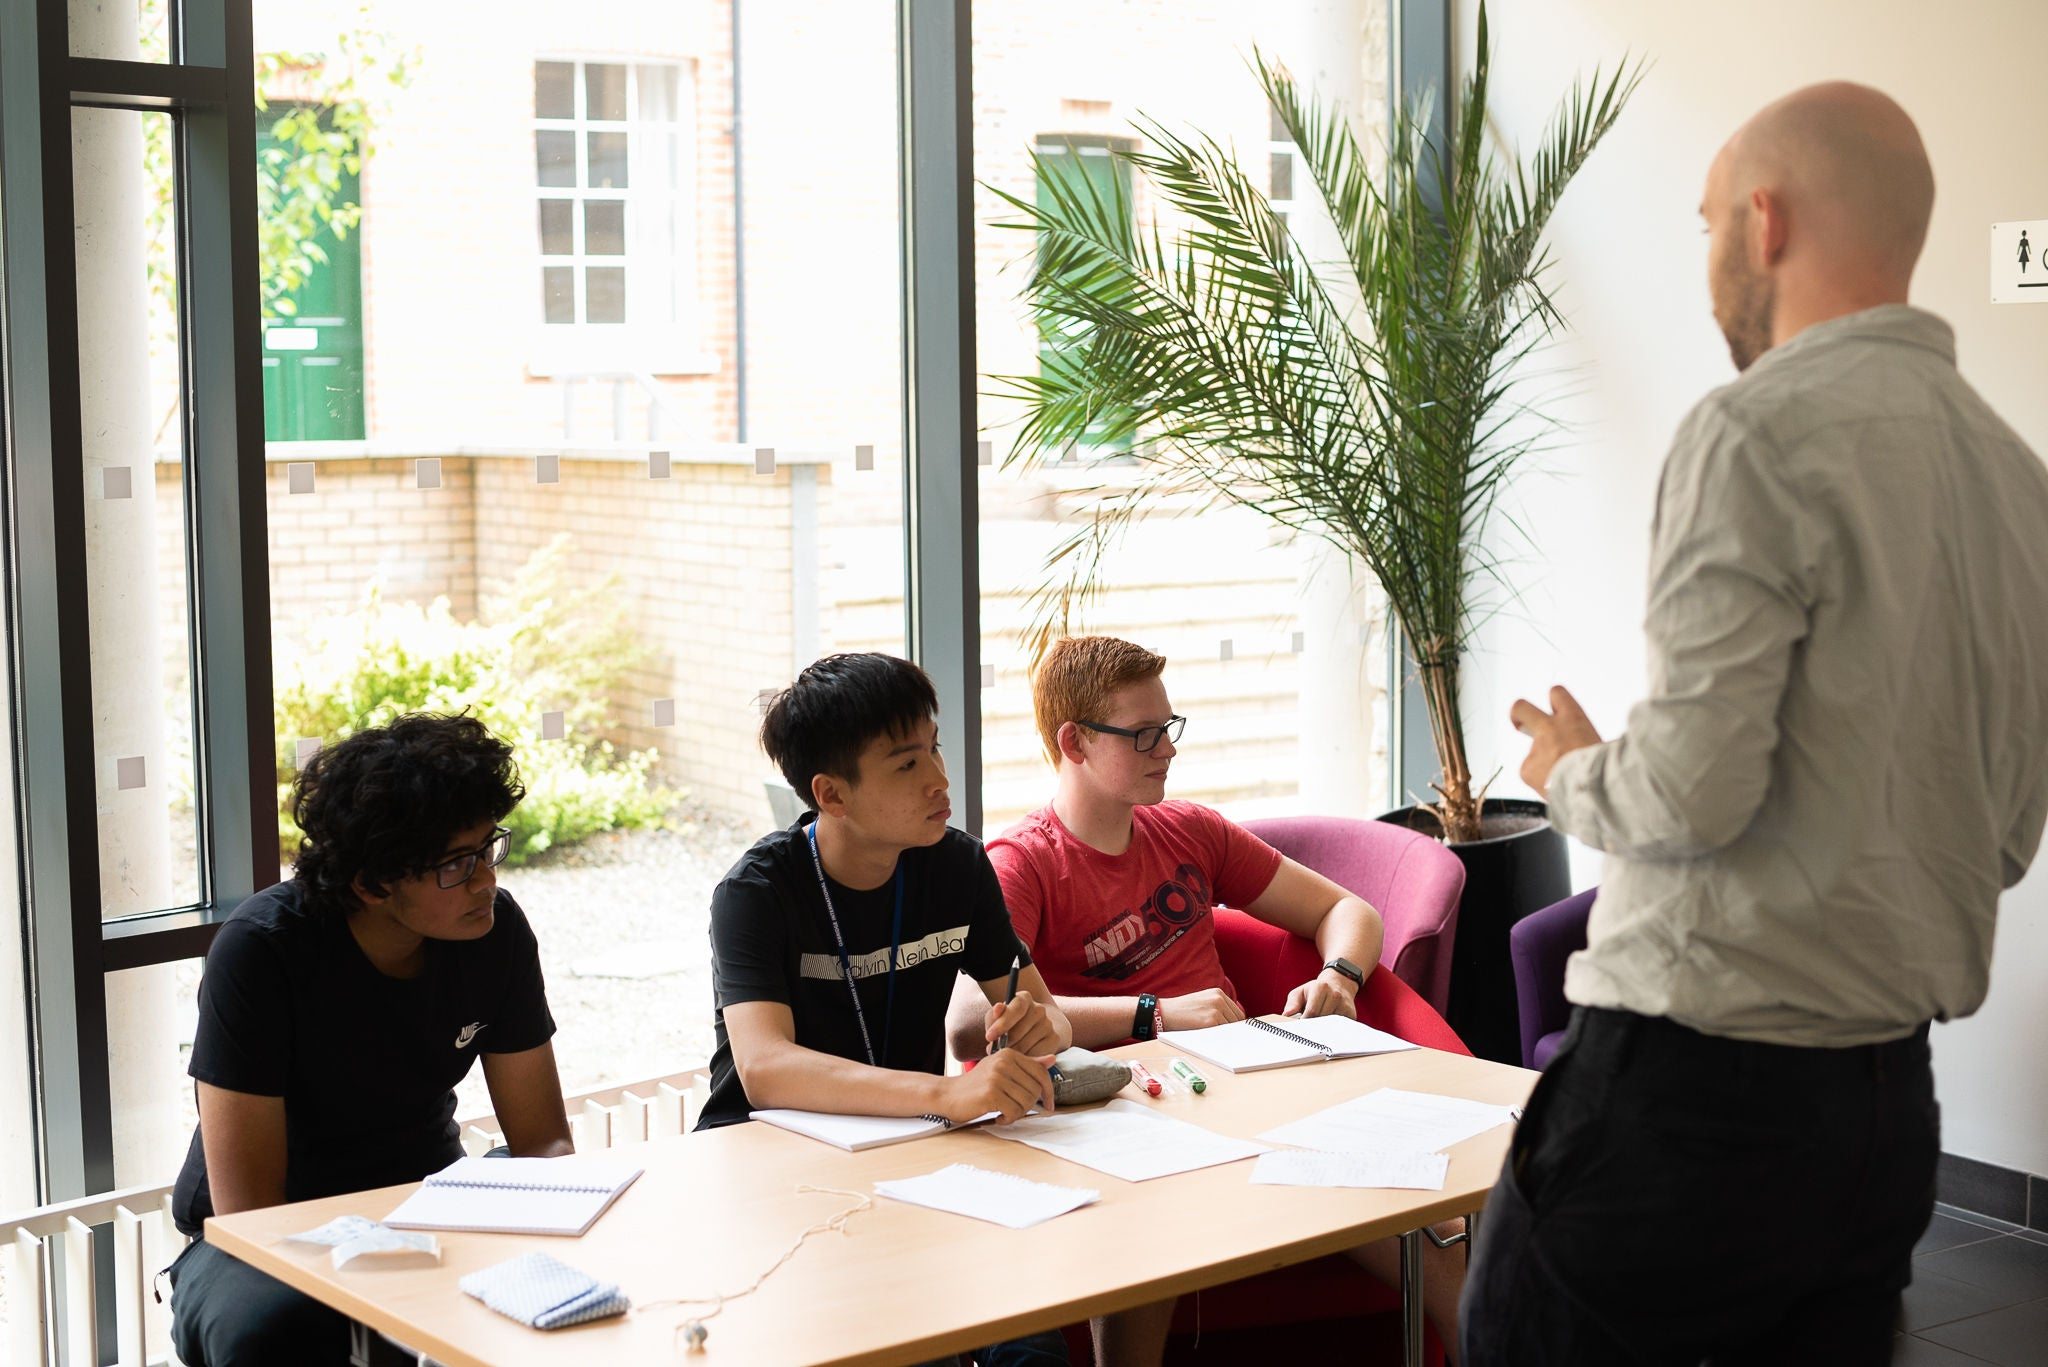 Summer school students learn from expert Oxford and Cambridge graduate tutors